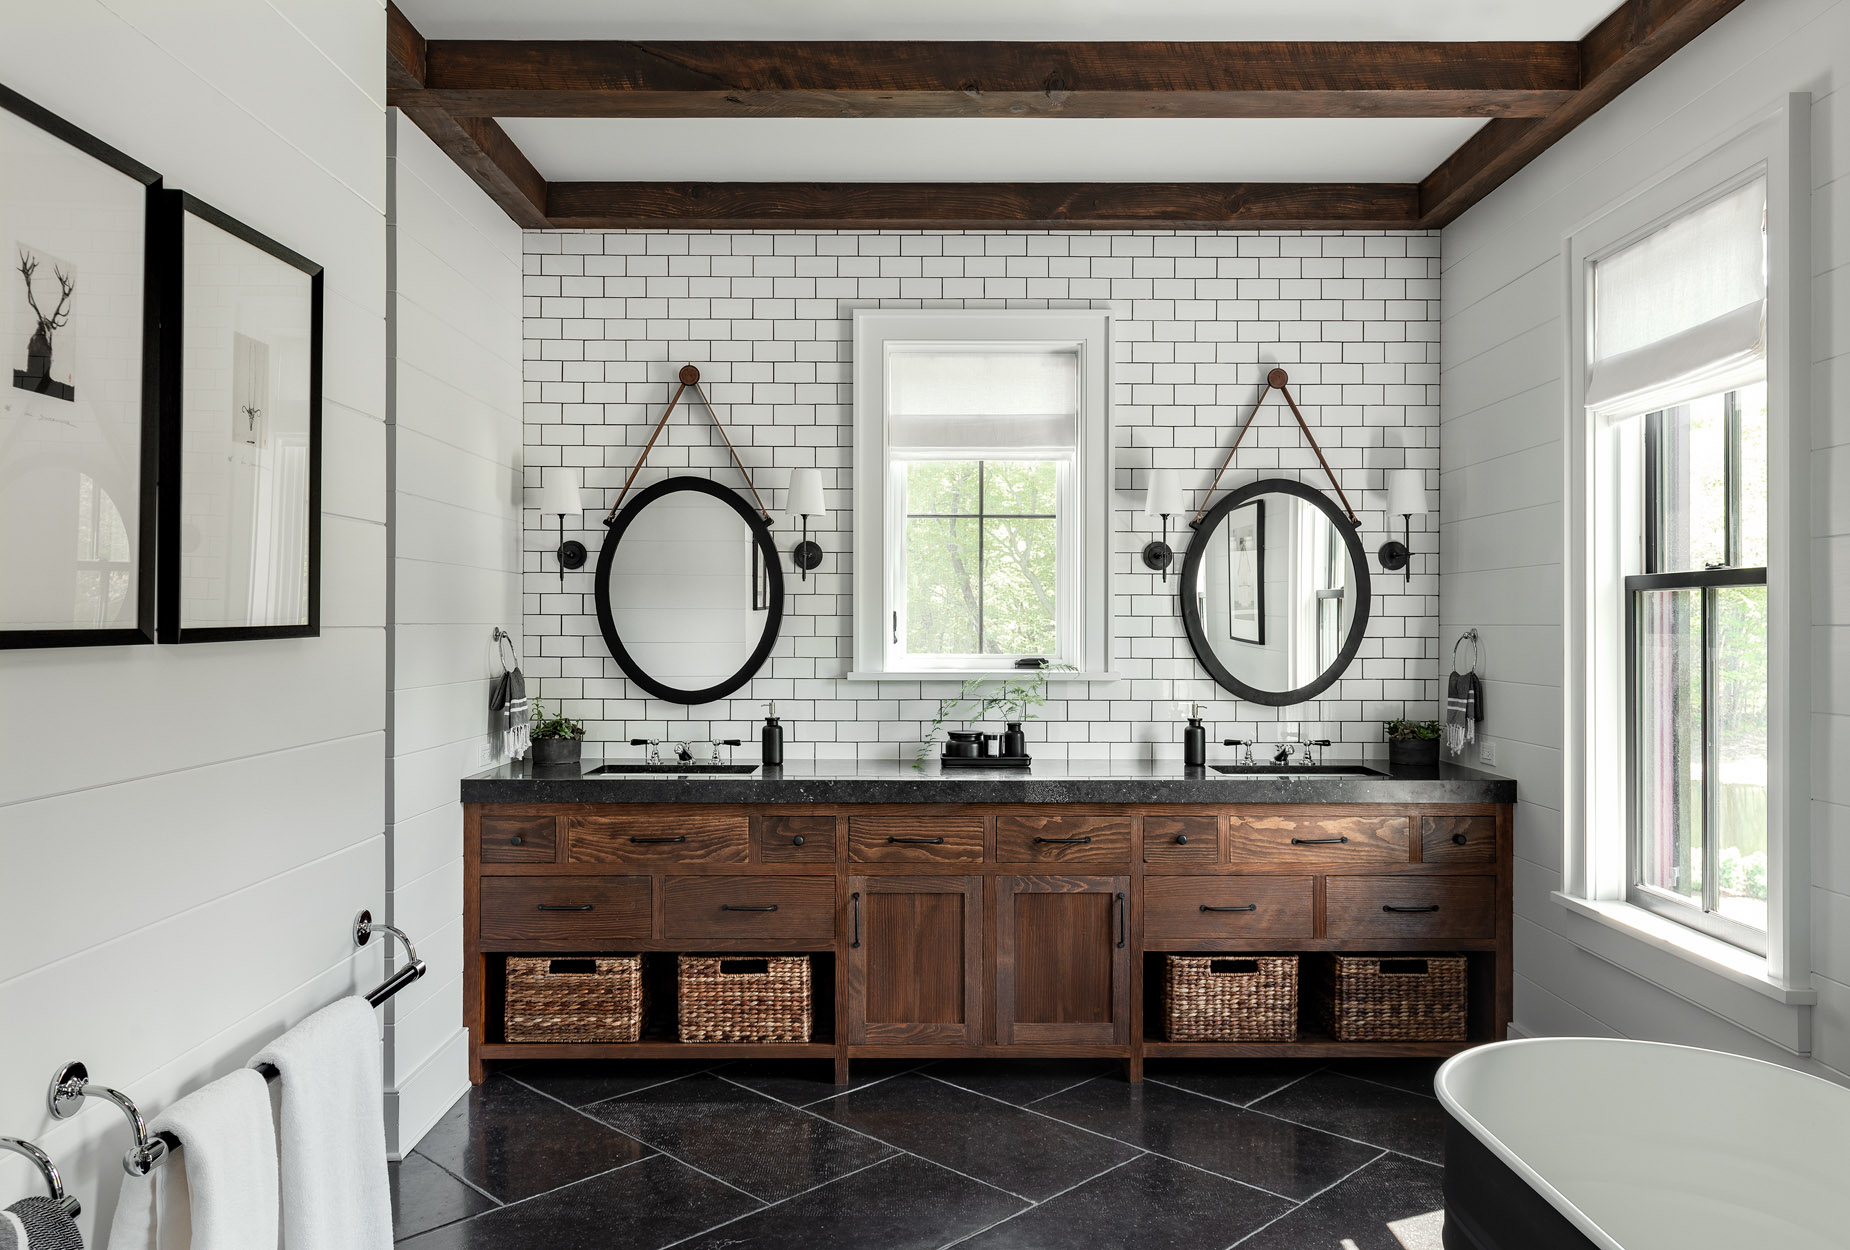 15 Very Different Bathrooms – On the Drawing Board